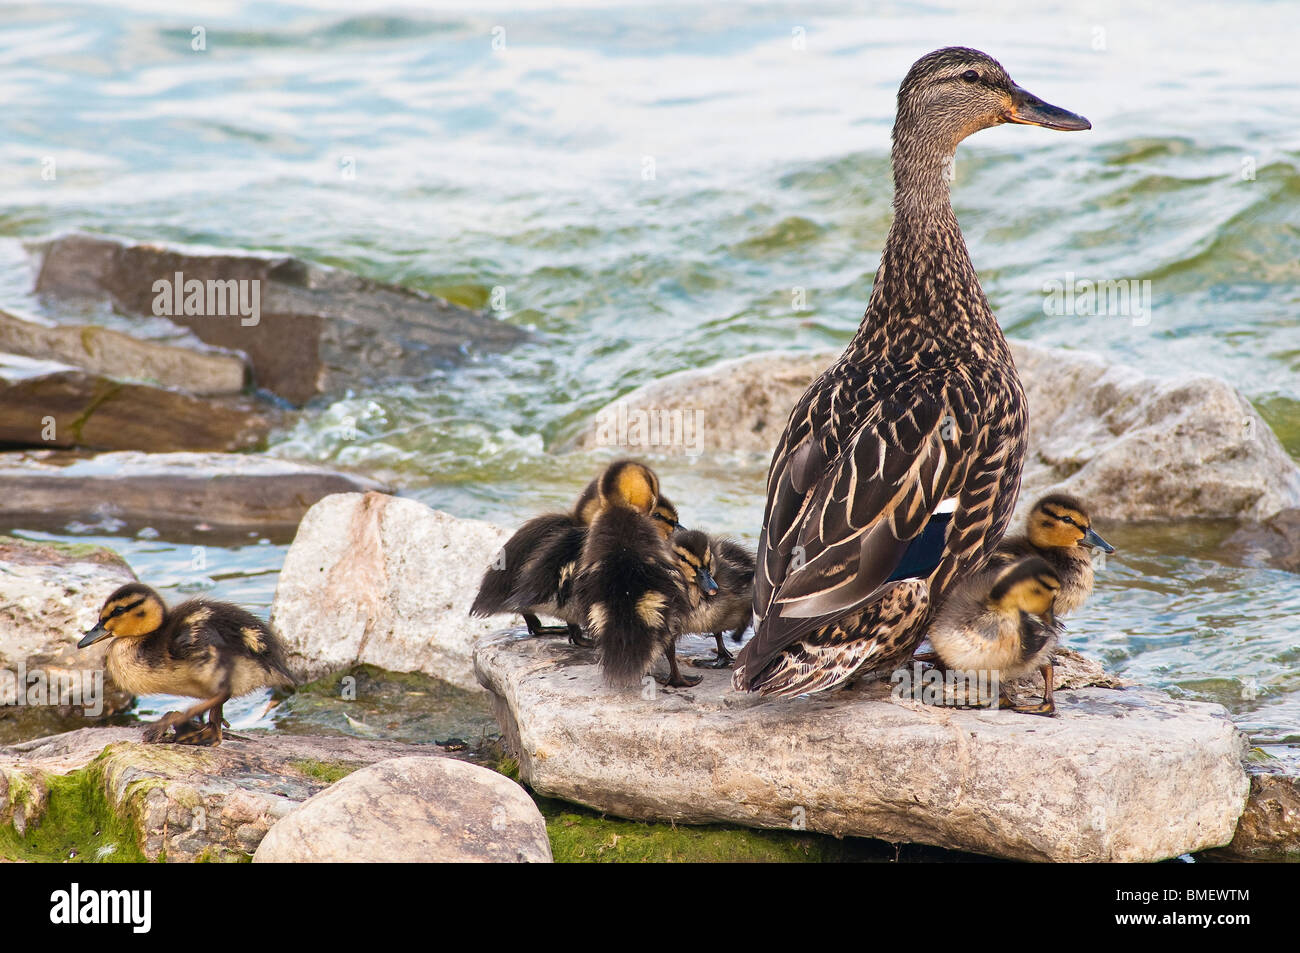 Female Mallard with young ducklings on the rocks in Lake Ontario - Stock Image